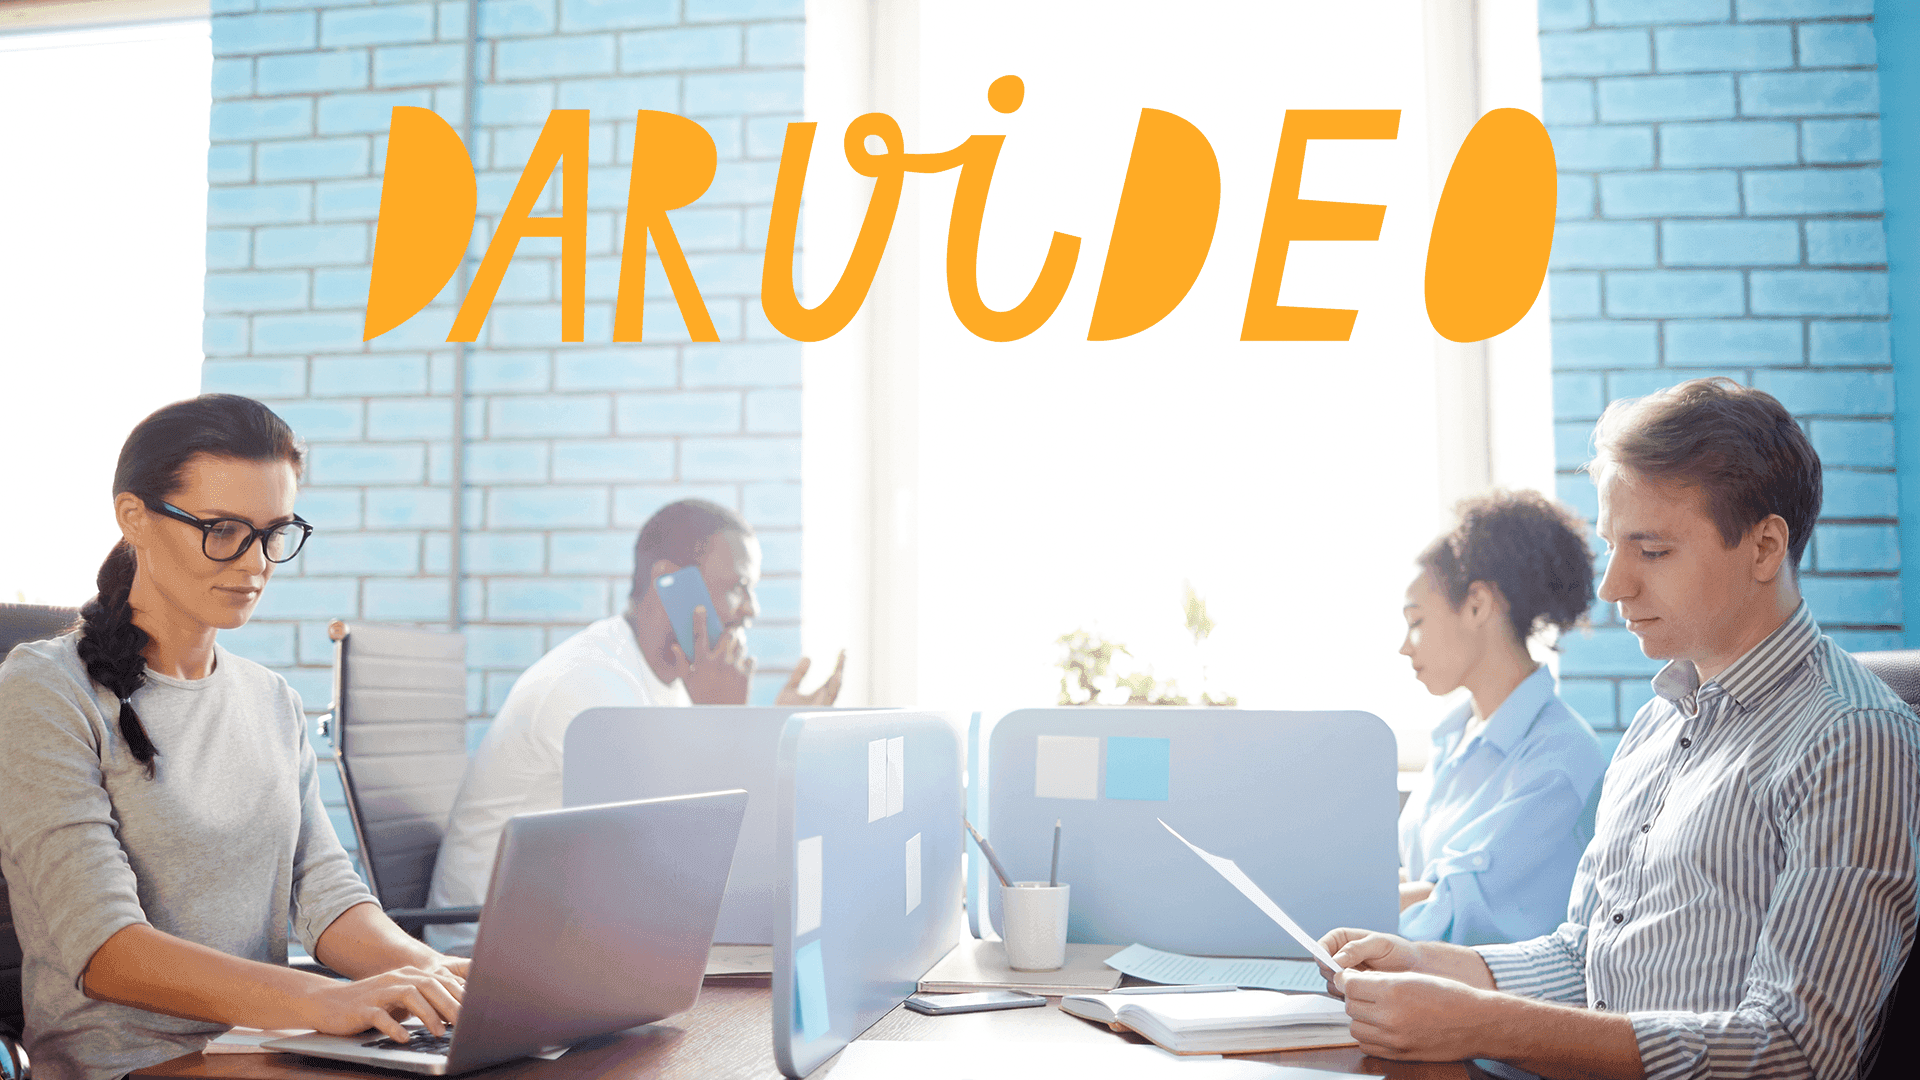 Darvideo - Order video remotely